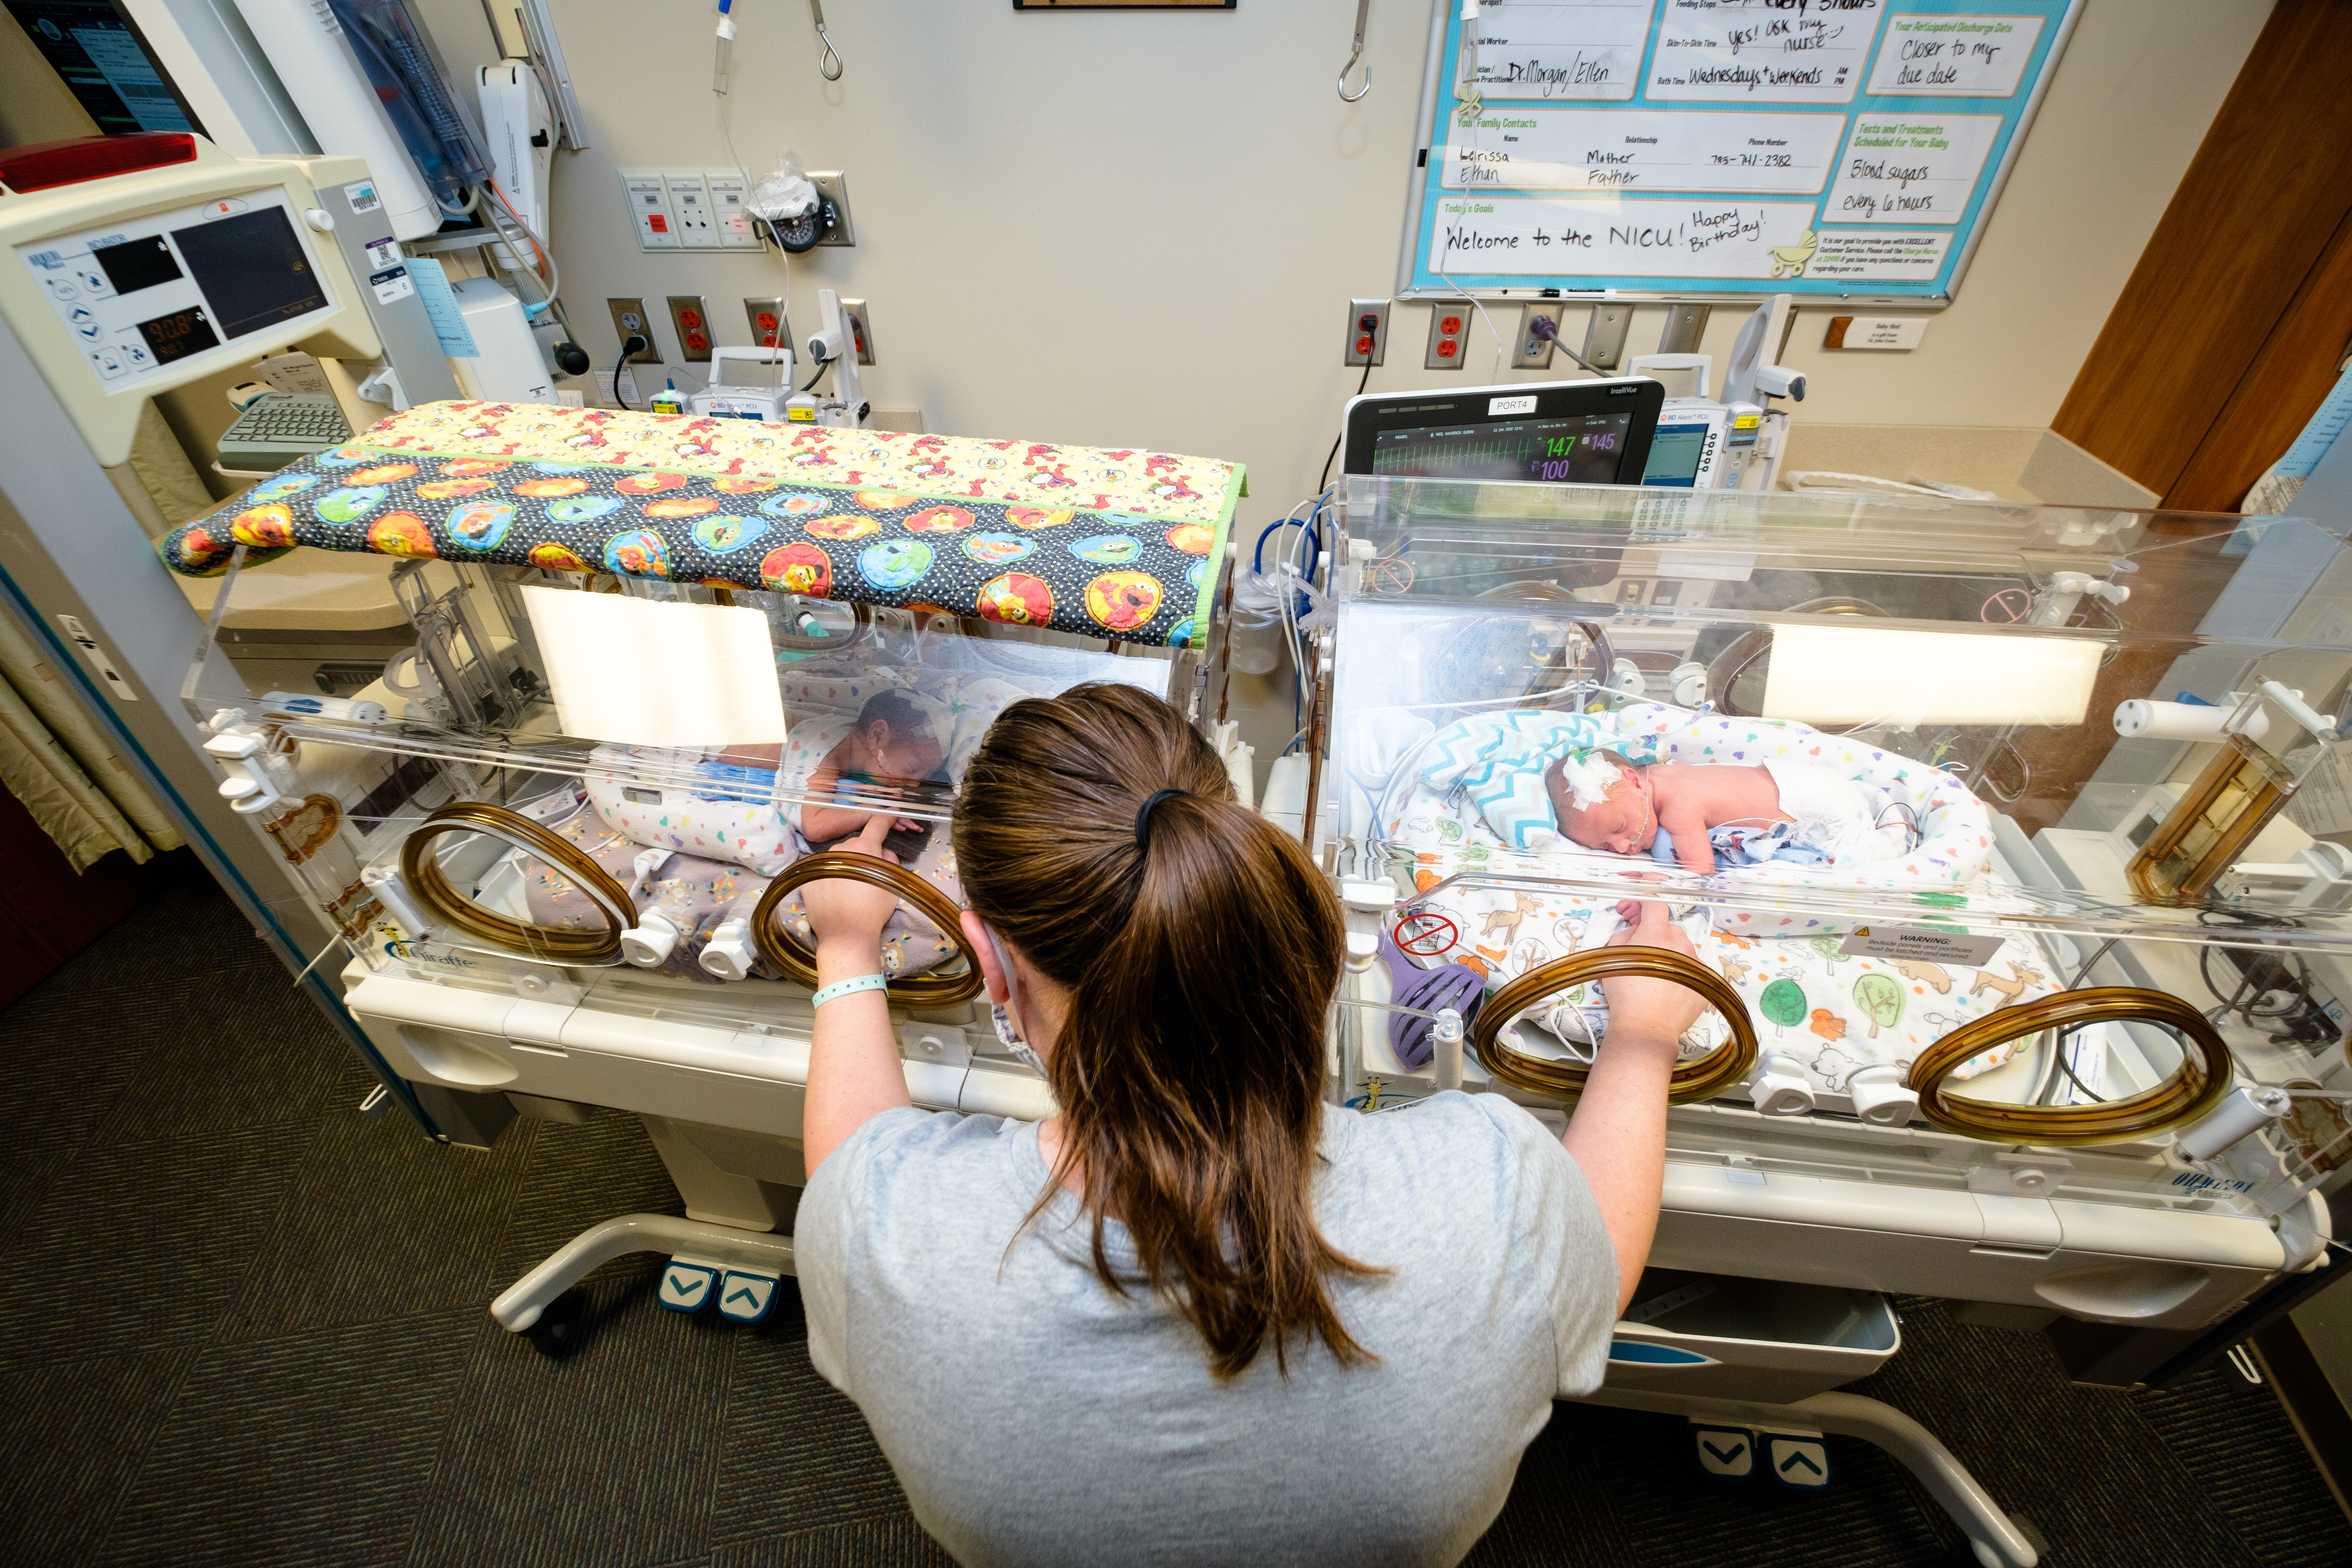 Stormont Vail sees baby boom of multiples